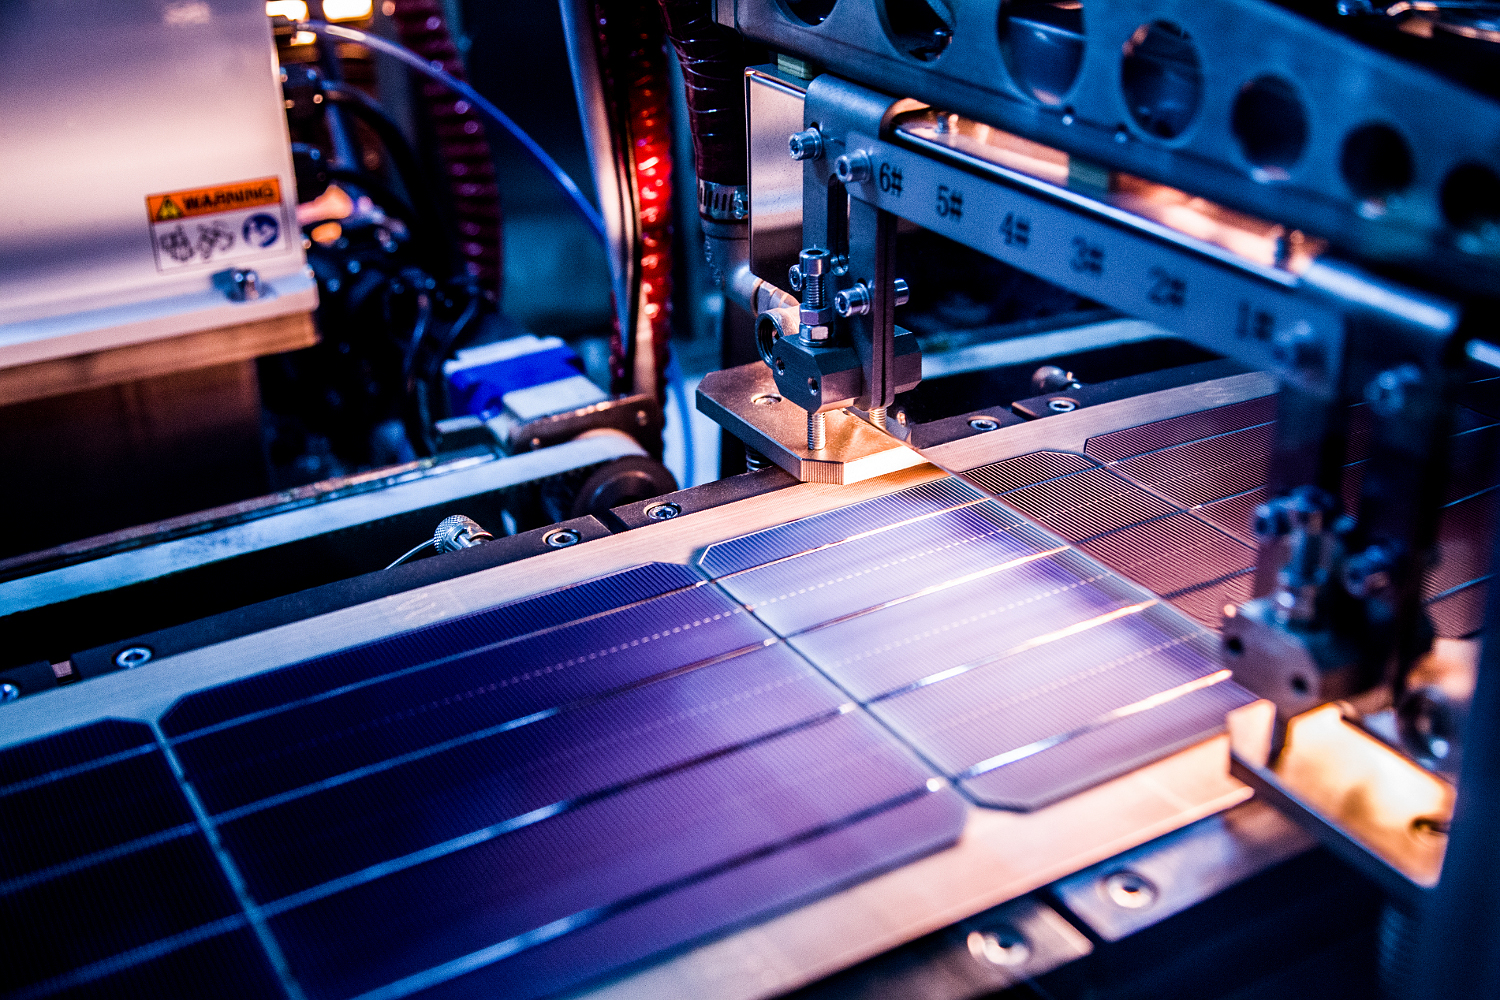 LONGi Group increased R&D expenditure from US$175.5 million in 2017, to US$182.7 million in 2018, marking the seventh consecutive year of increased spending and setting a second consecutive year of record spending in the PV industry. No surprise then that LONGi Group was ranked first in PV Tech's annual R&D spending report for 2018. Image: LONGi Solar